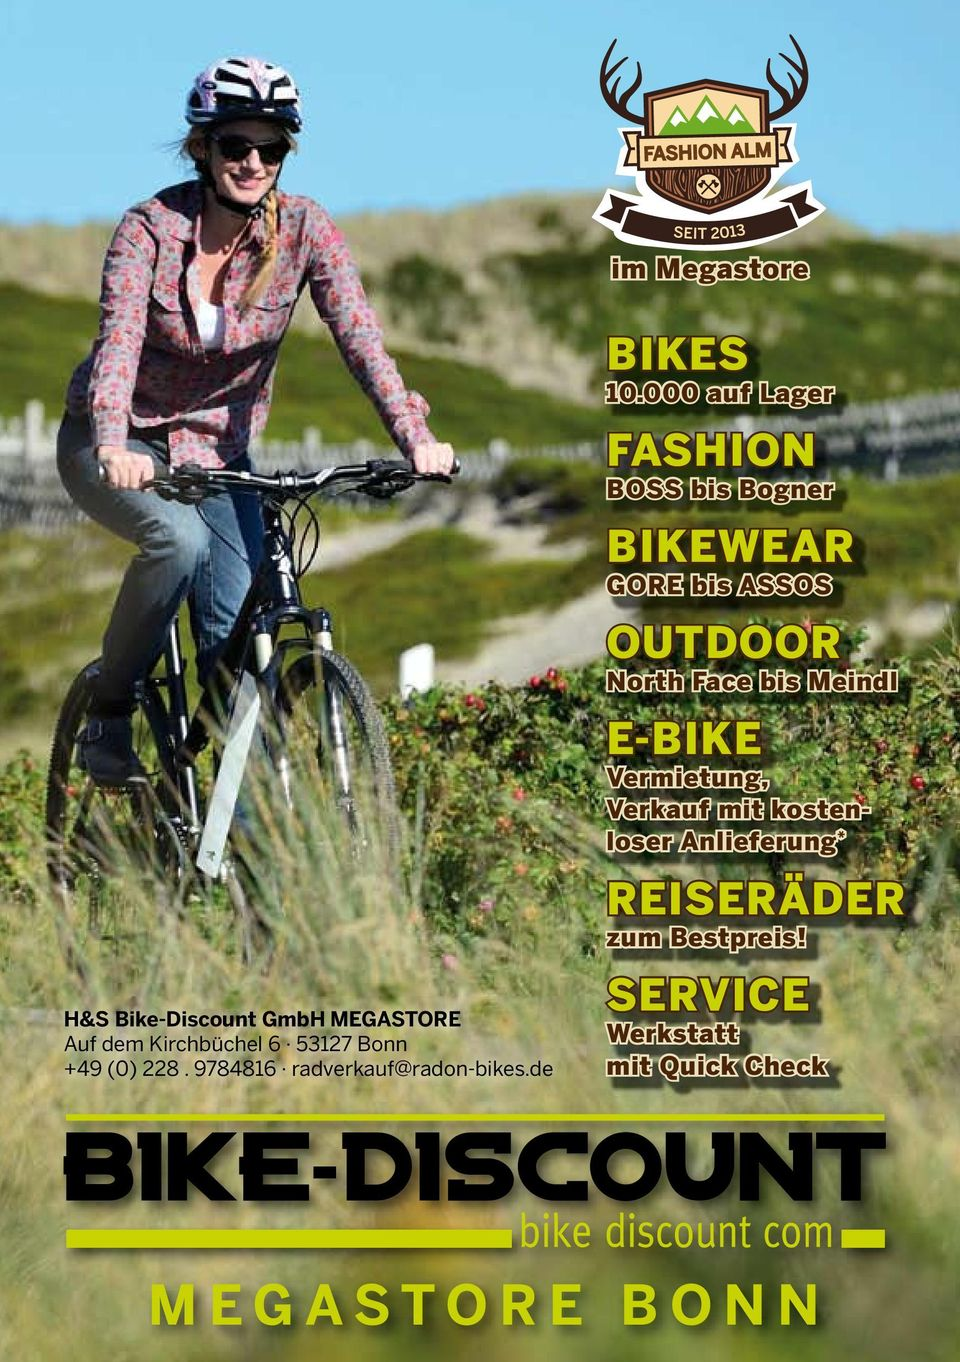 000 auf Lager FASHION BOSS bis Bogner BIKEWEAR GORE bis ASSOS OUTDOOR North Face bis Meindl